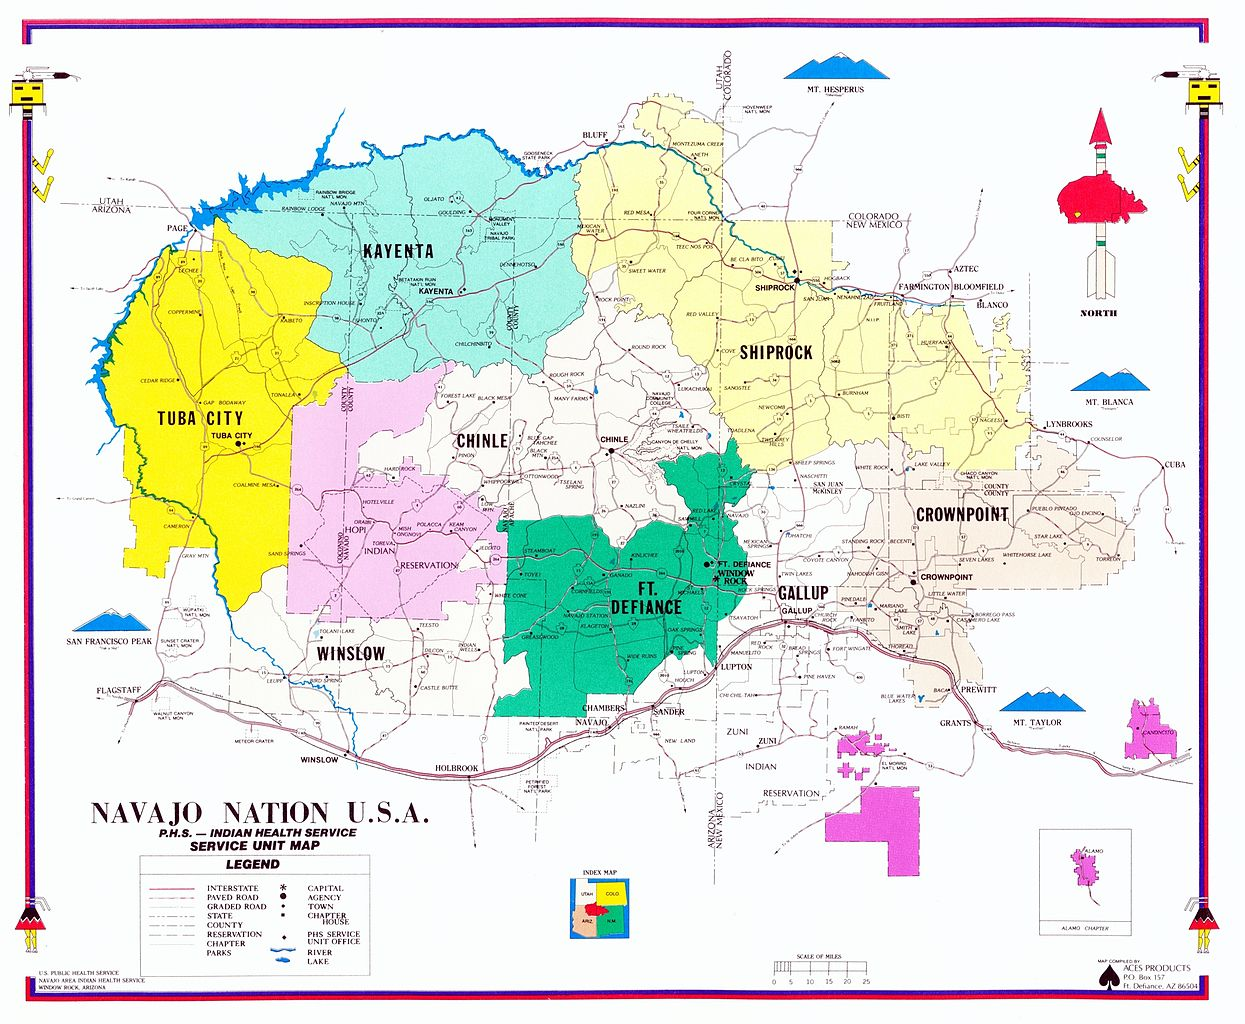 Navajo-Nation-Map: Improving Public Health Services with GIS Information & Analysis